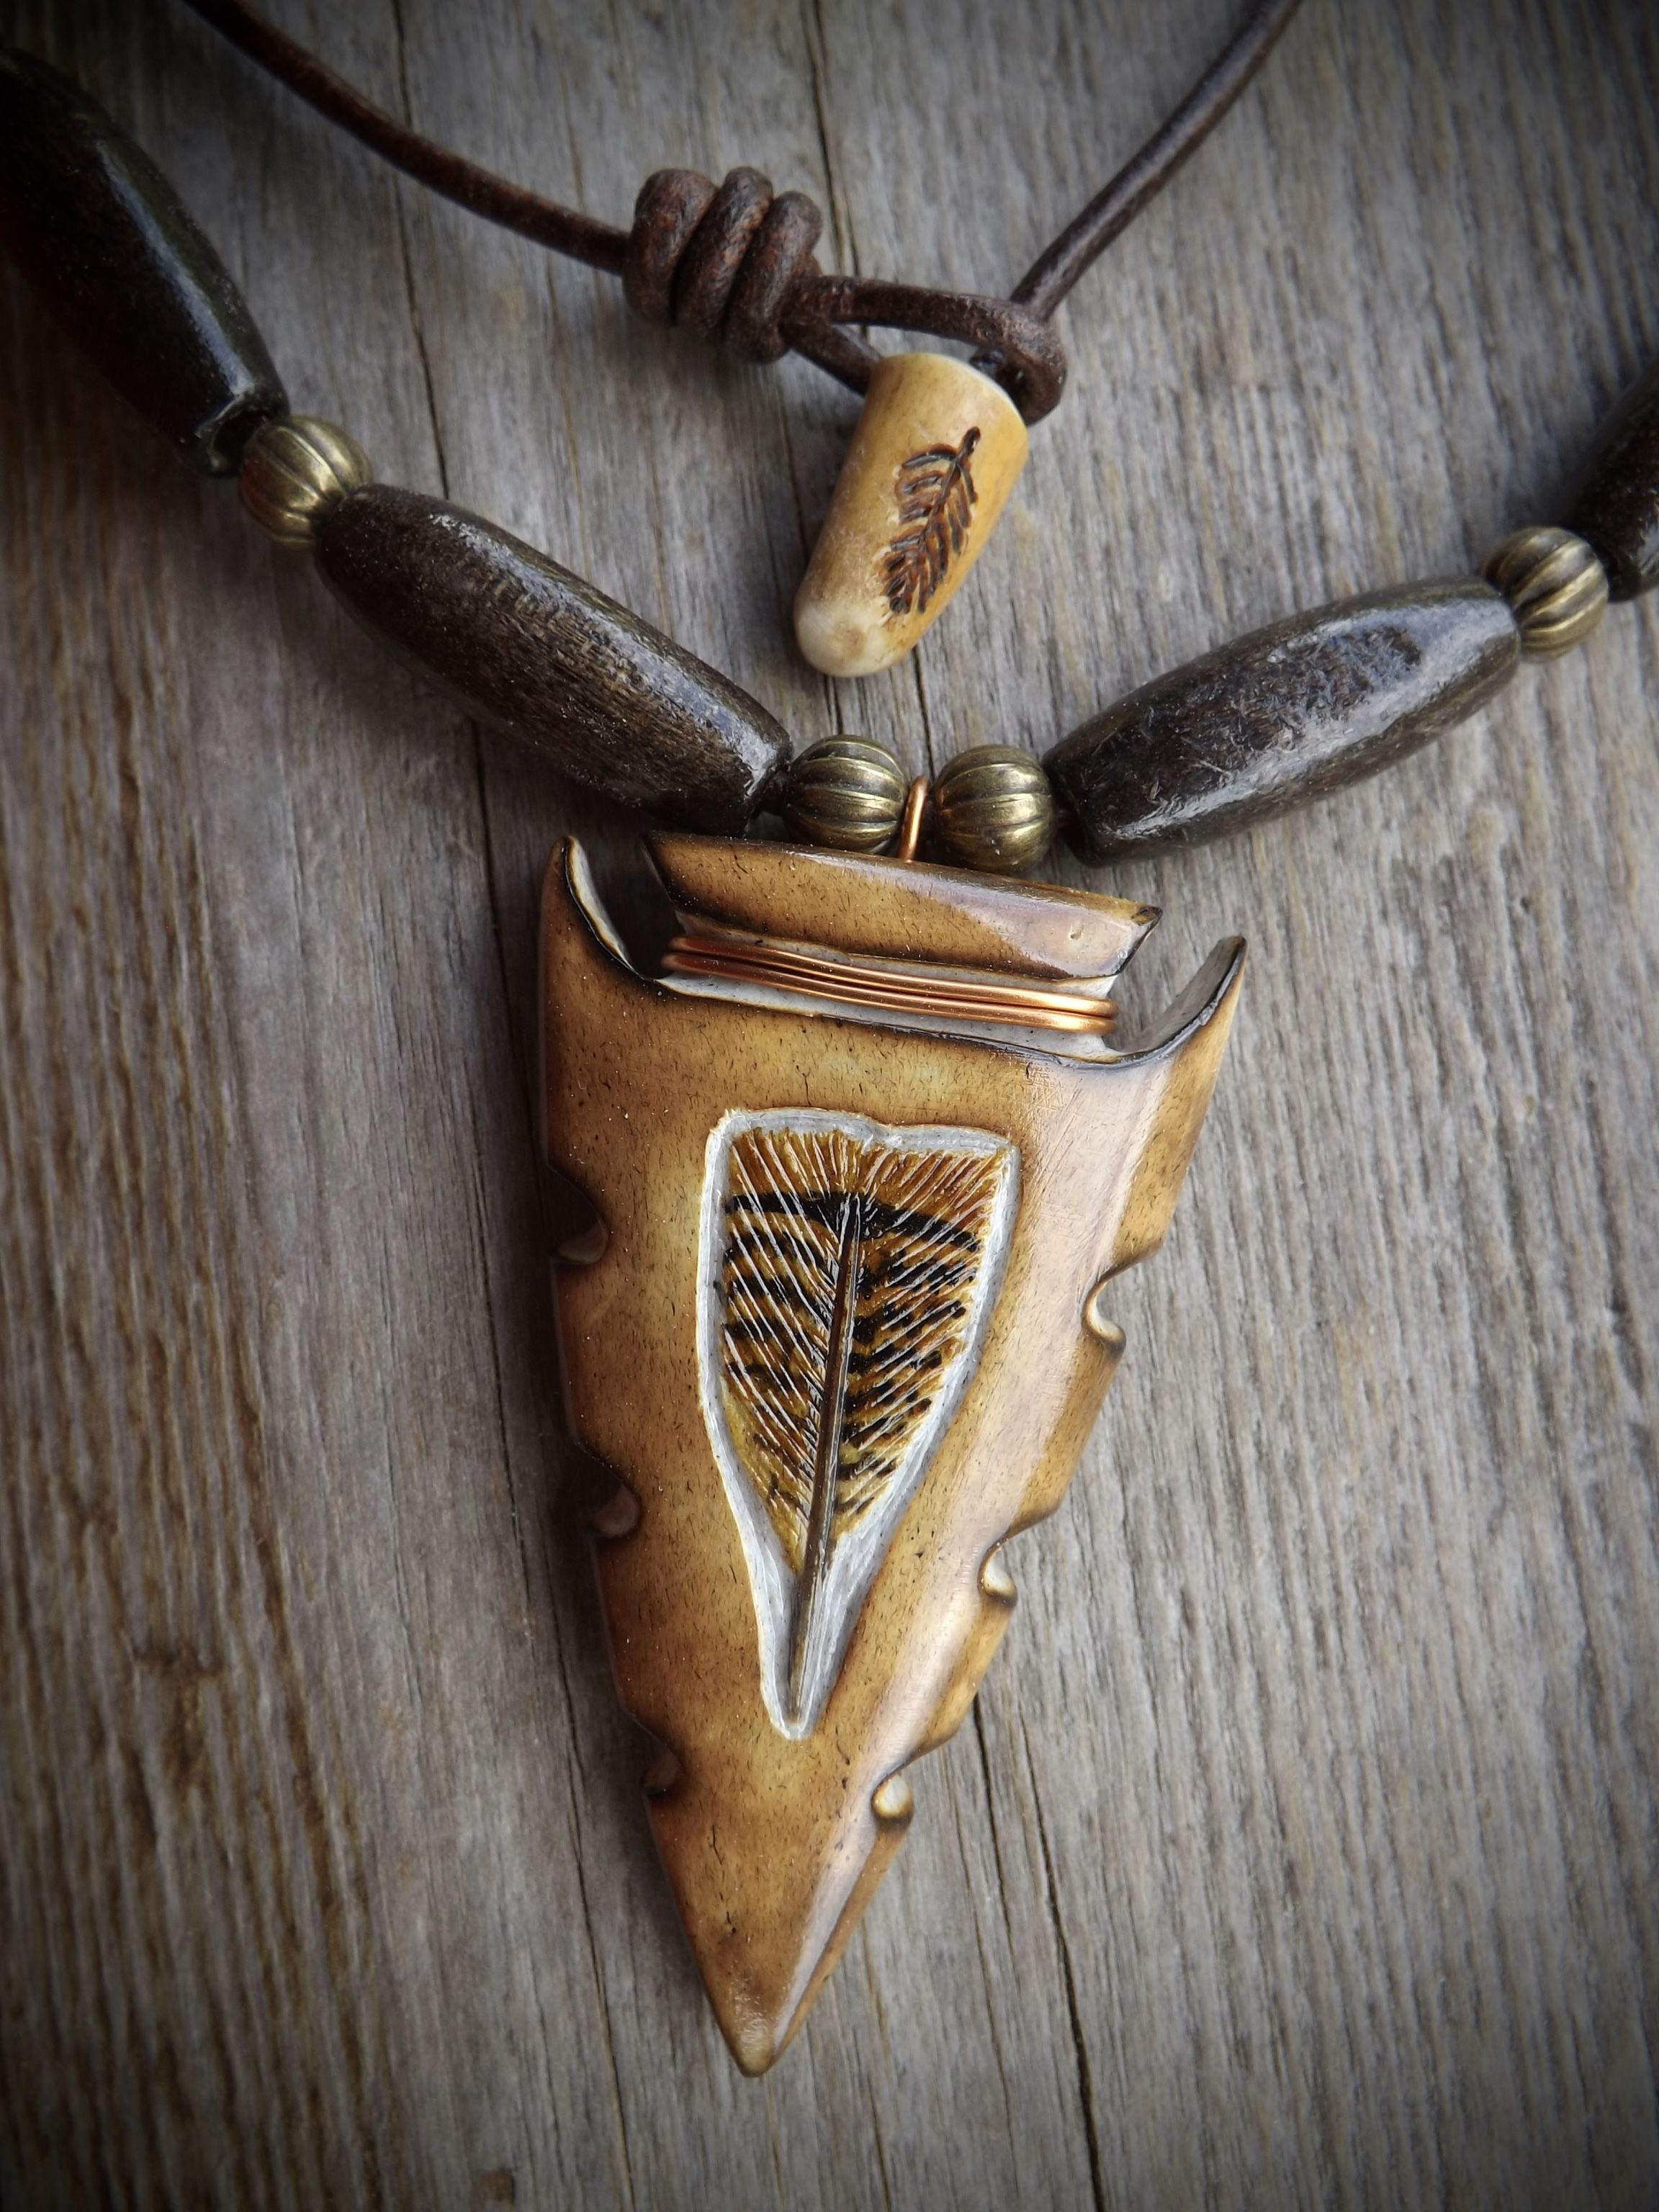 Hand carved from whitetail deer antler and strung on mm